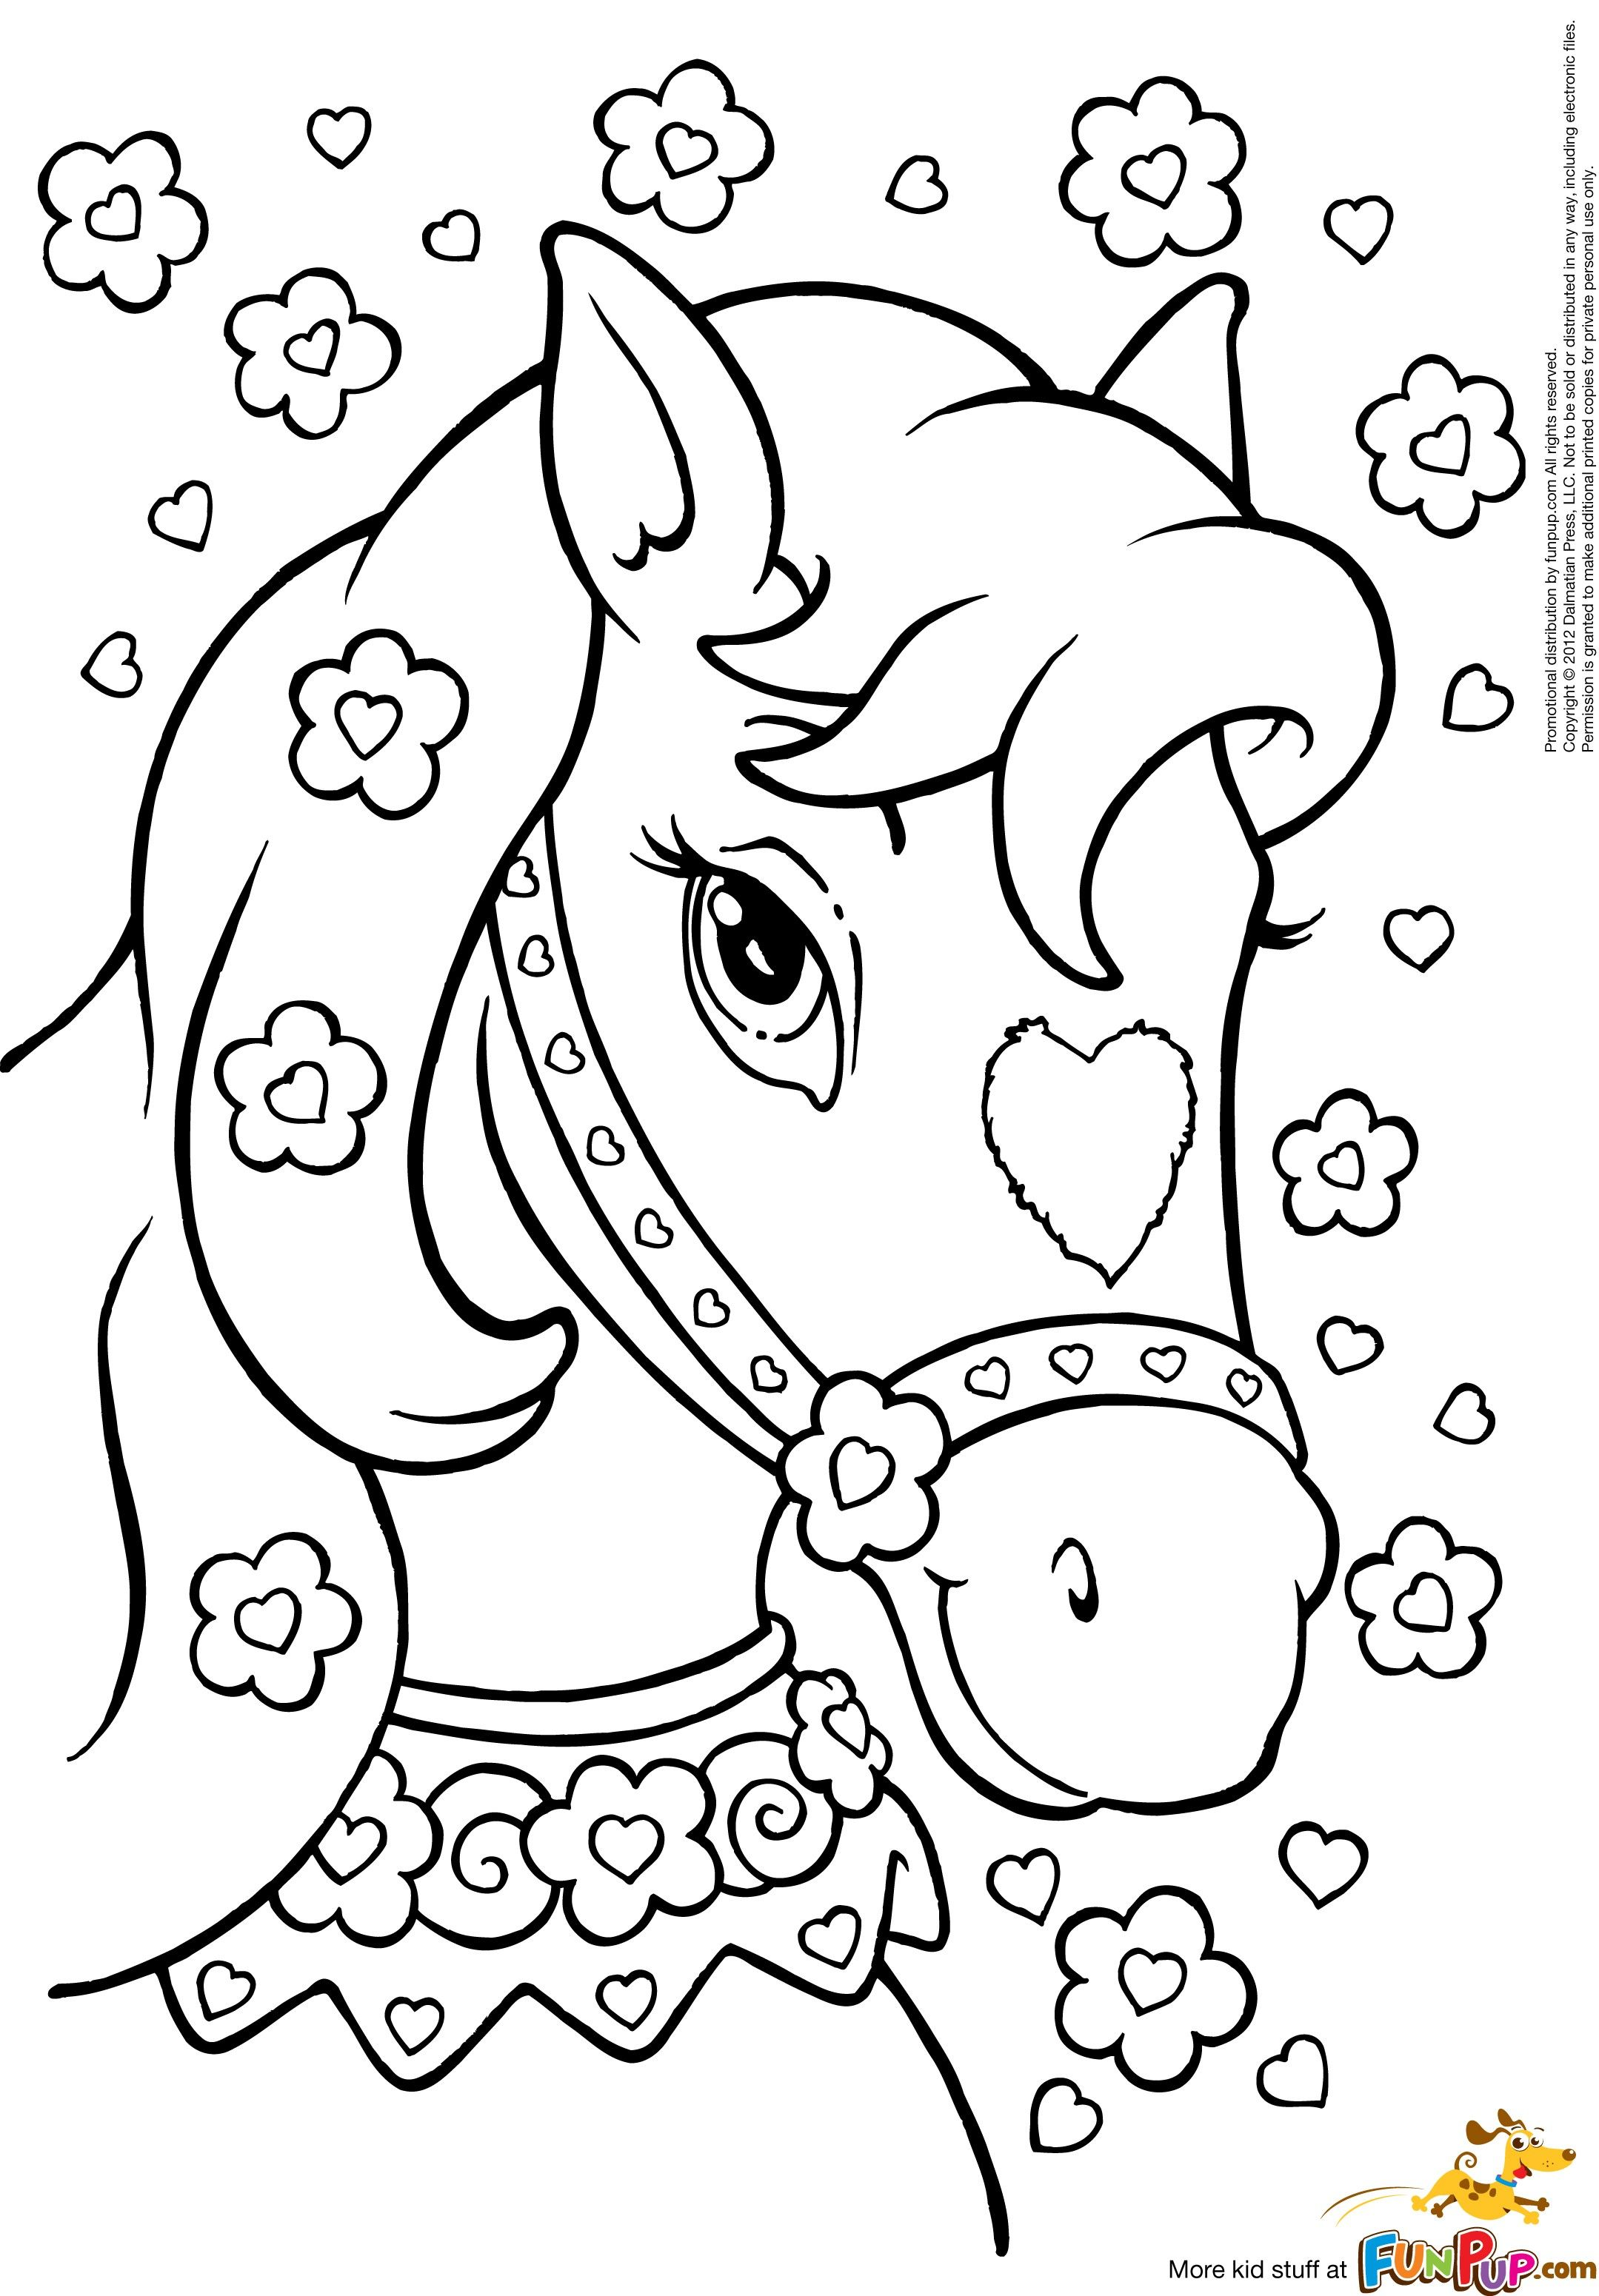 - Free Printable Coloring Books For Toddlers